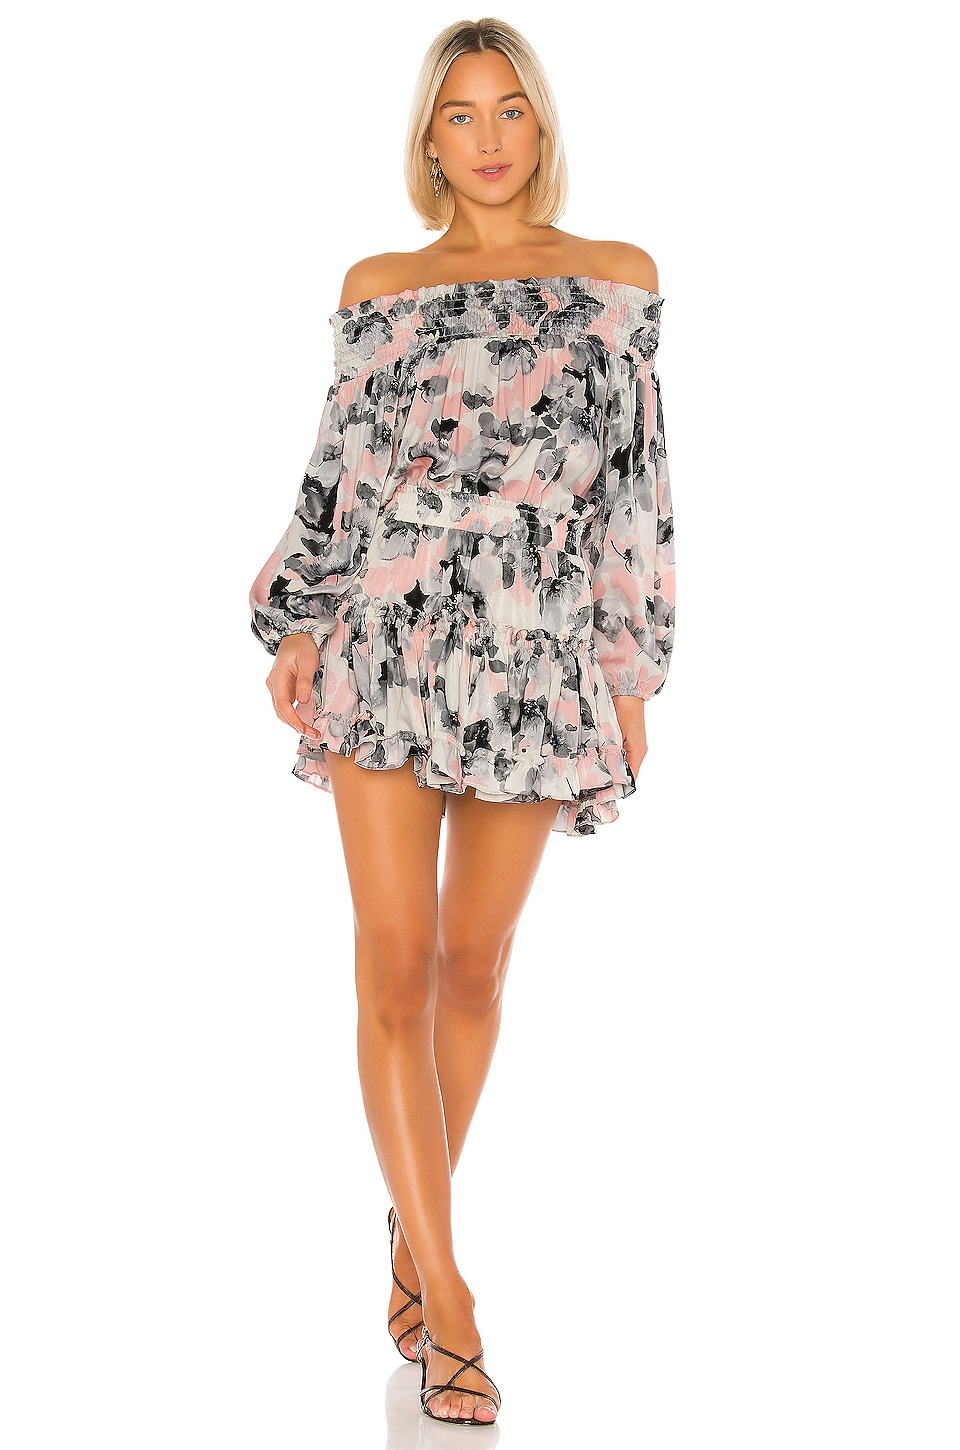 MISA Los Angeles Freesia Dress in Water Color Floral